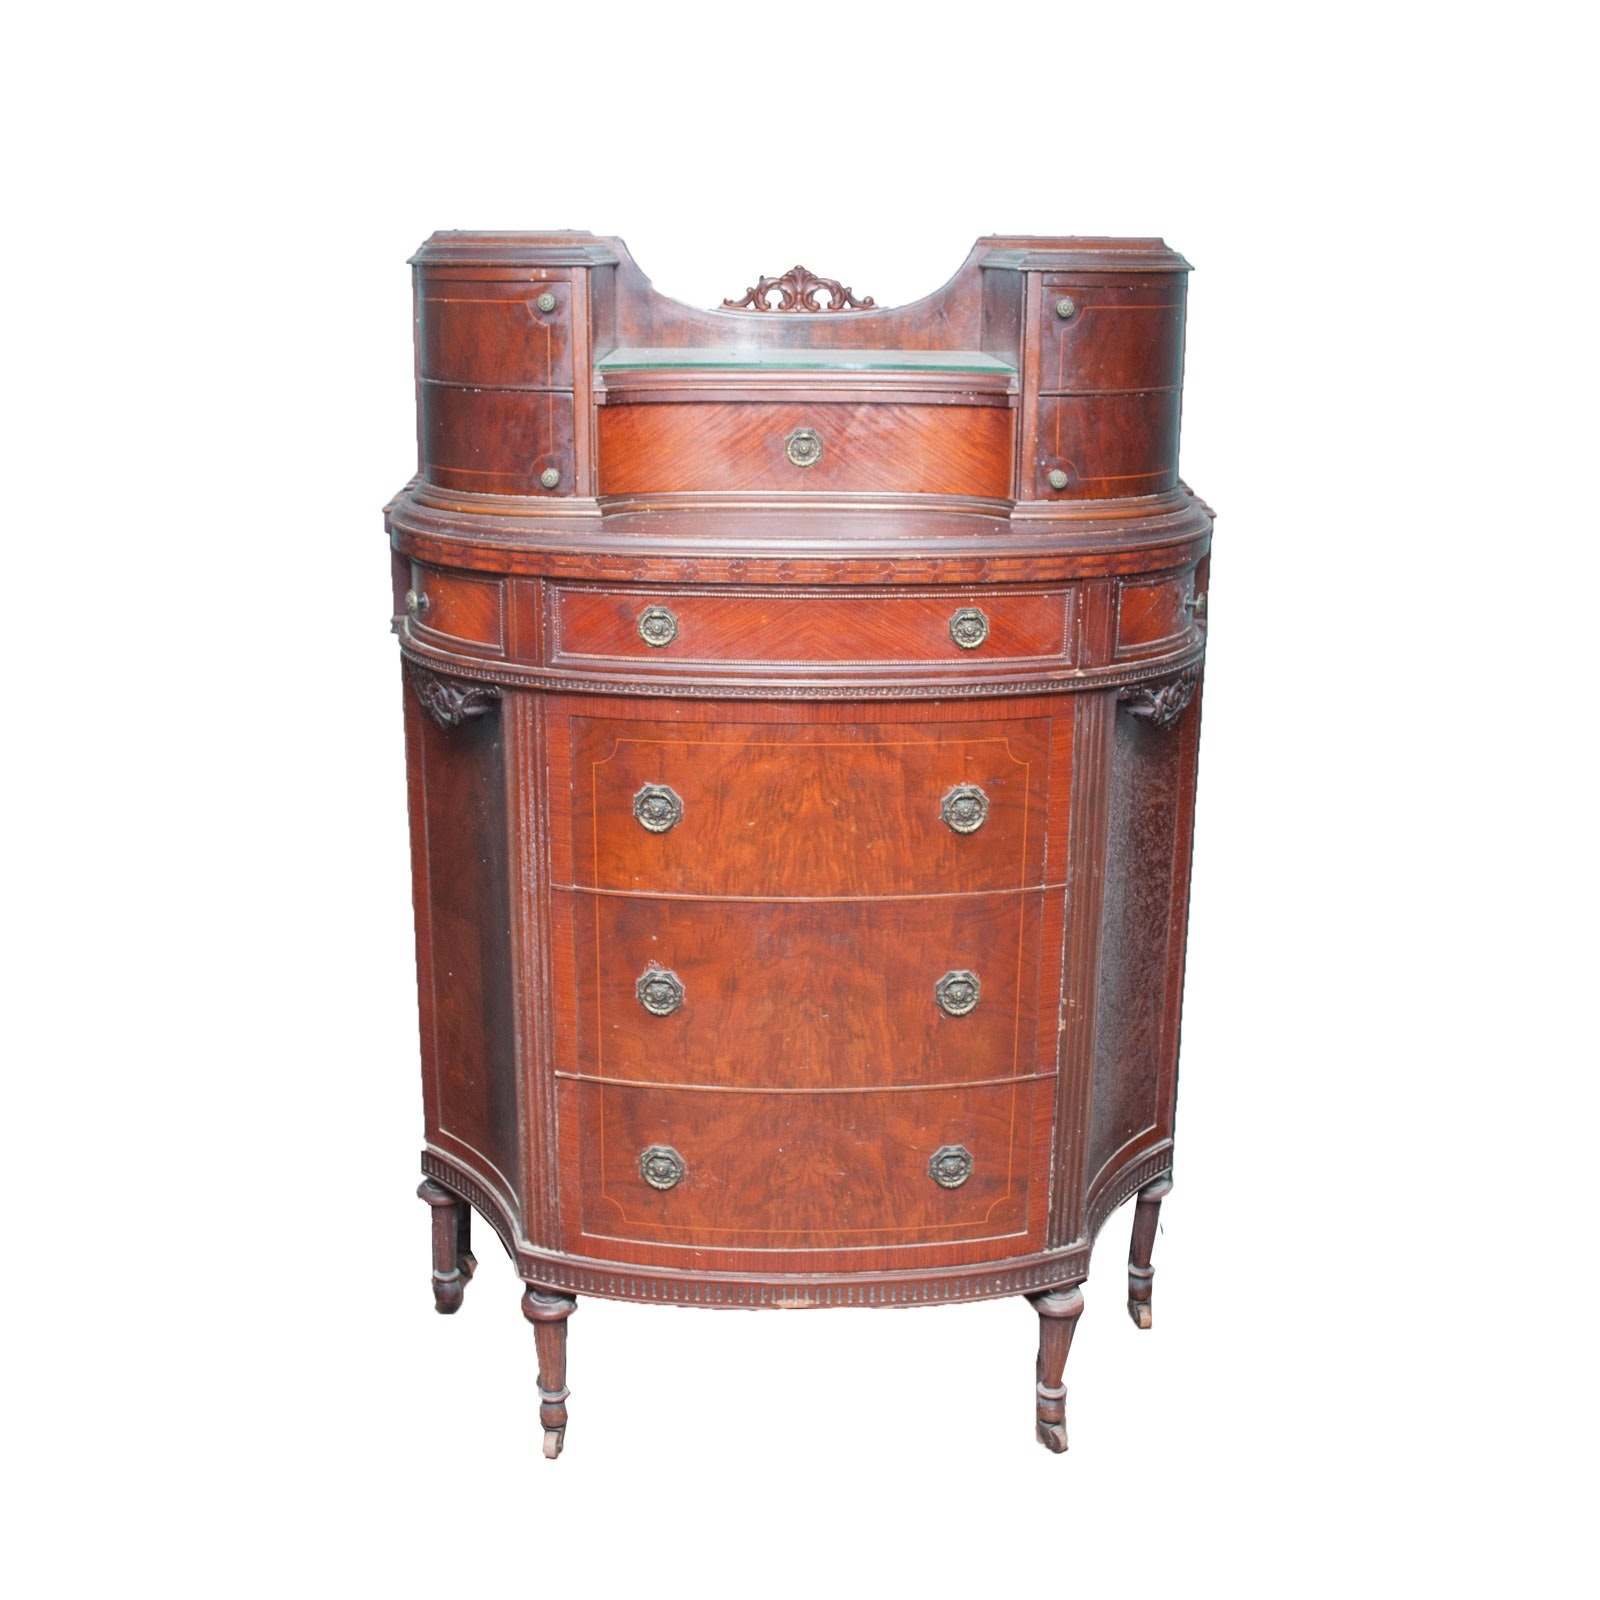 Antique Stille and Duhlmeier Company Chest on Chest of Drawers